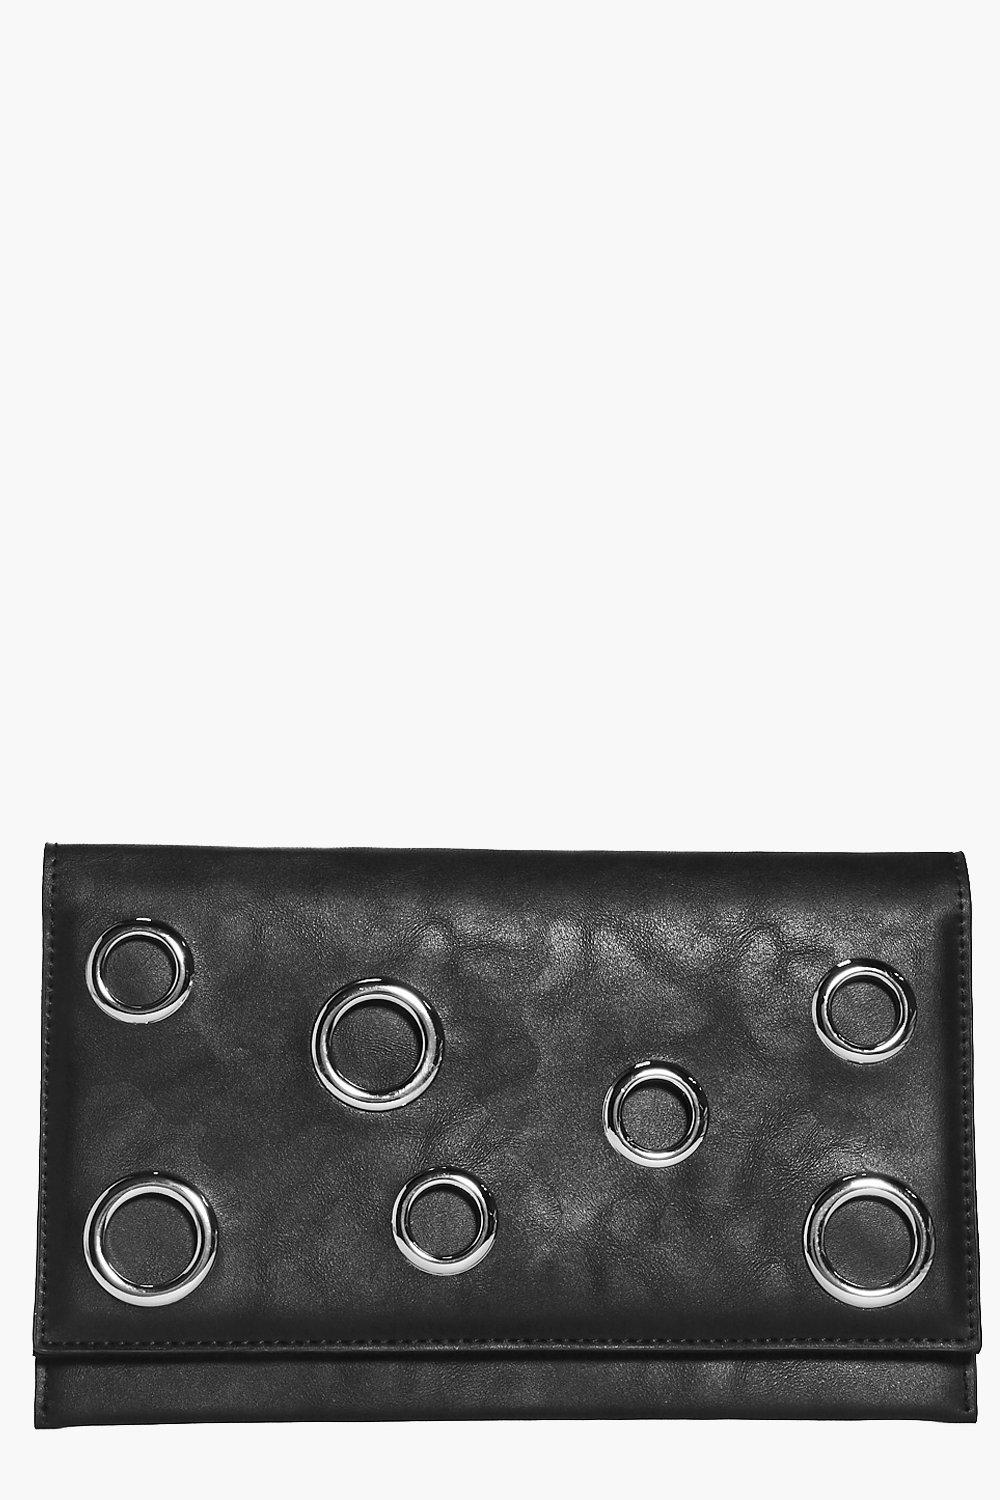 Tilly Eyelet Detail Fold Over Clutch Bag